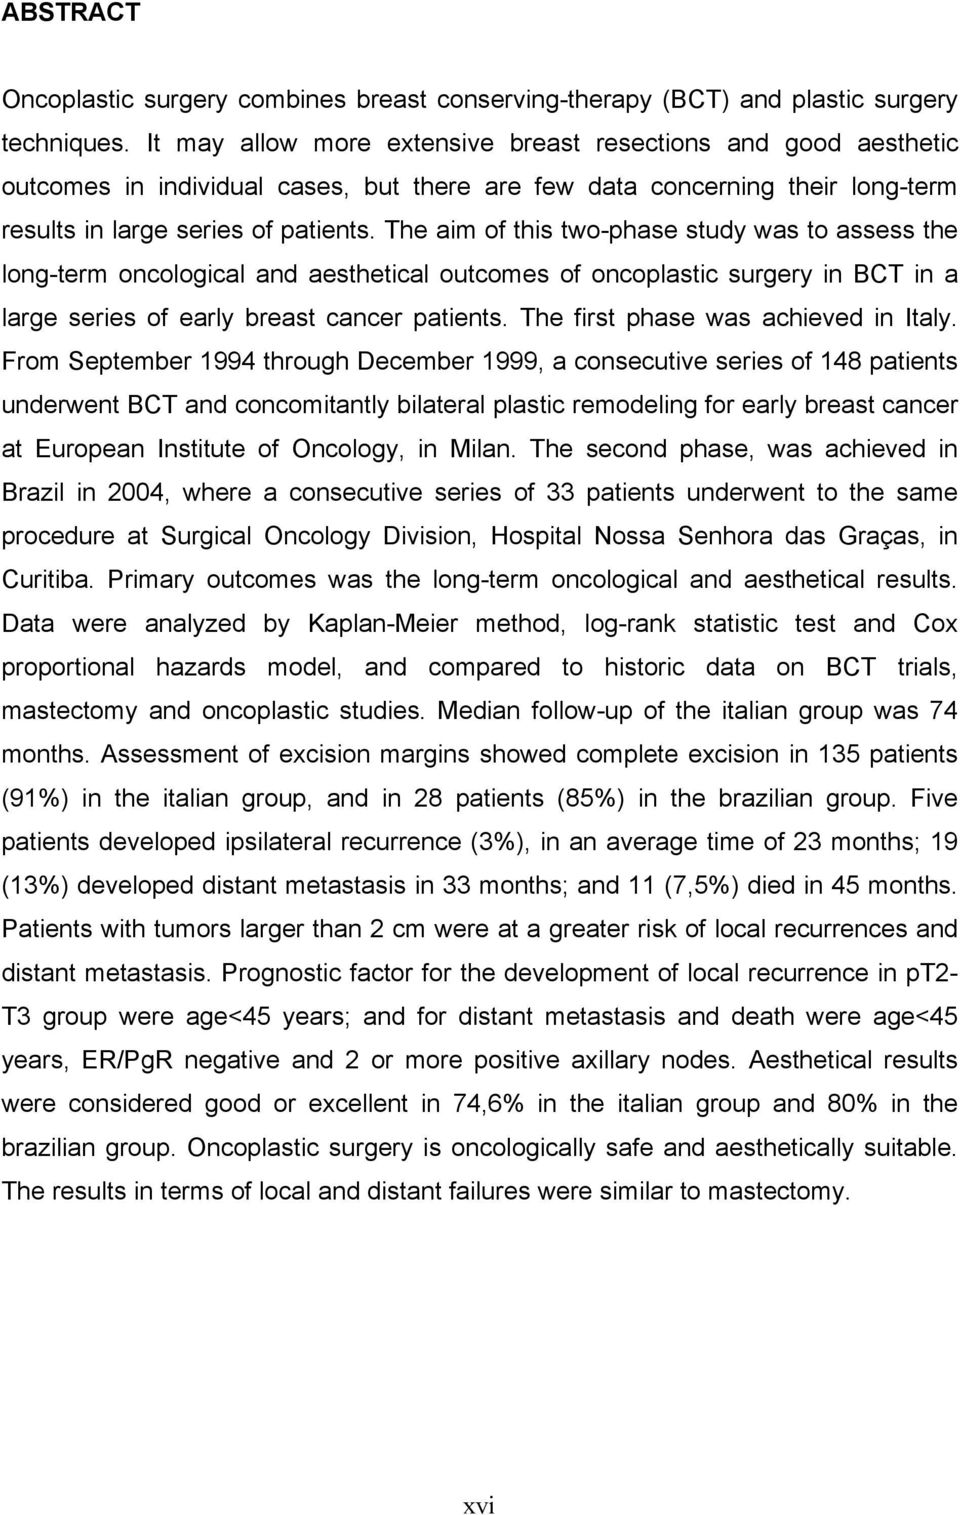 The aim of this two-phase study was to assess the long-term oncological and aesthetical outcomes of oncoplastic surgery in BCT in a large series of early breast cancer patients.